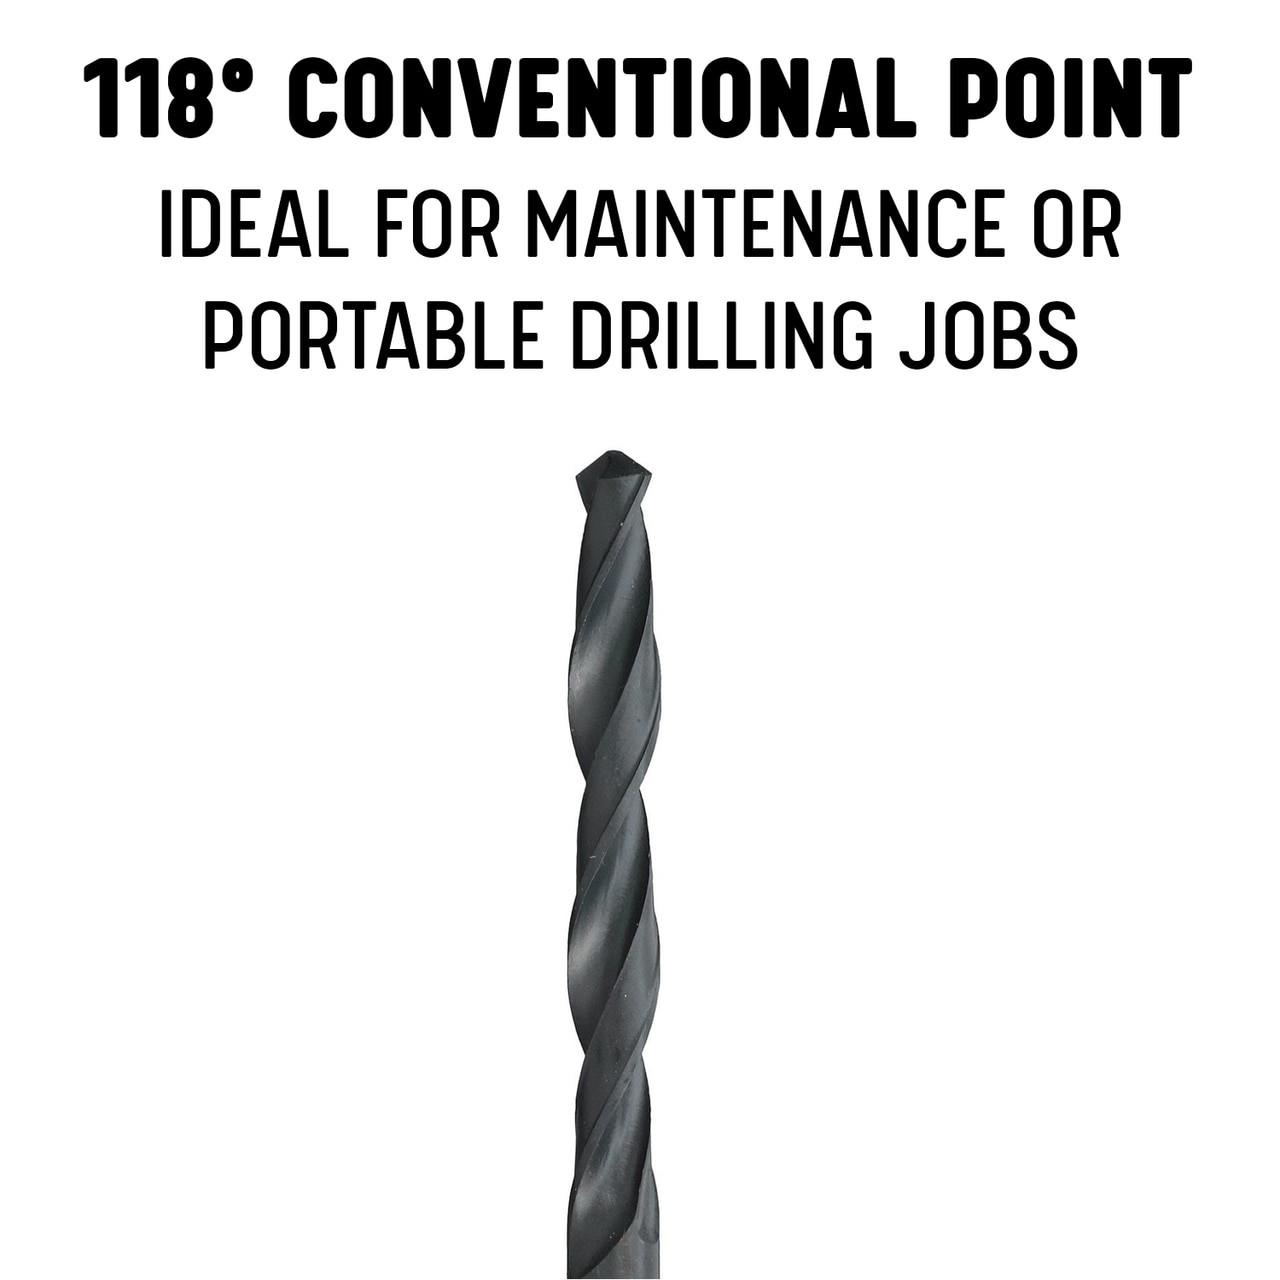 Black Oxide Coated Precision Twist Drill 018041 Series R18 PTD18041 #41 Size Jobber Length HSS Drill PART NO